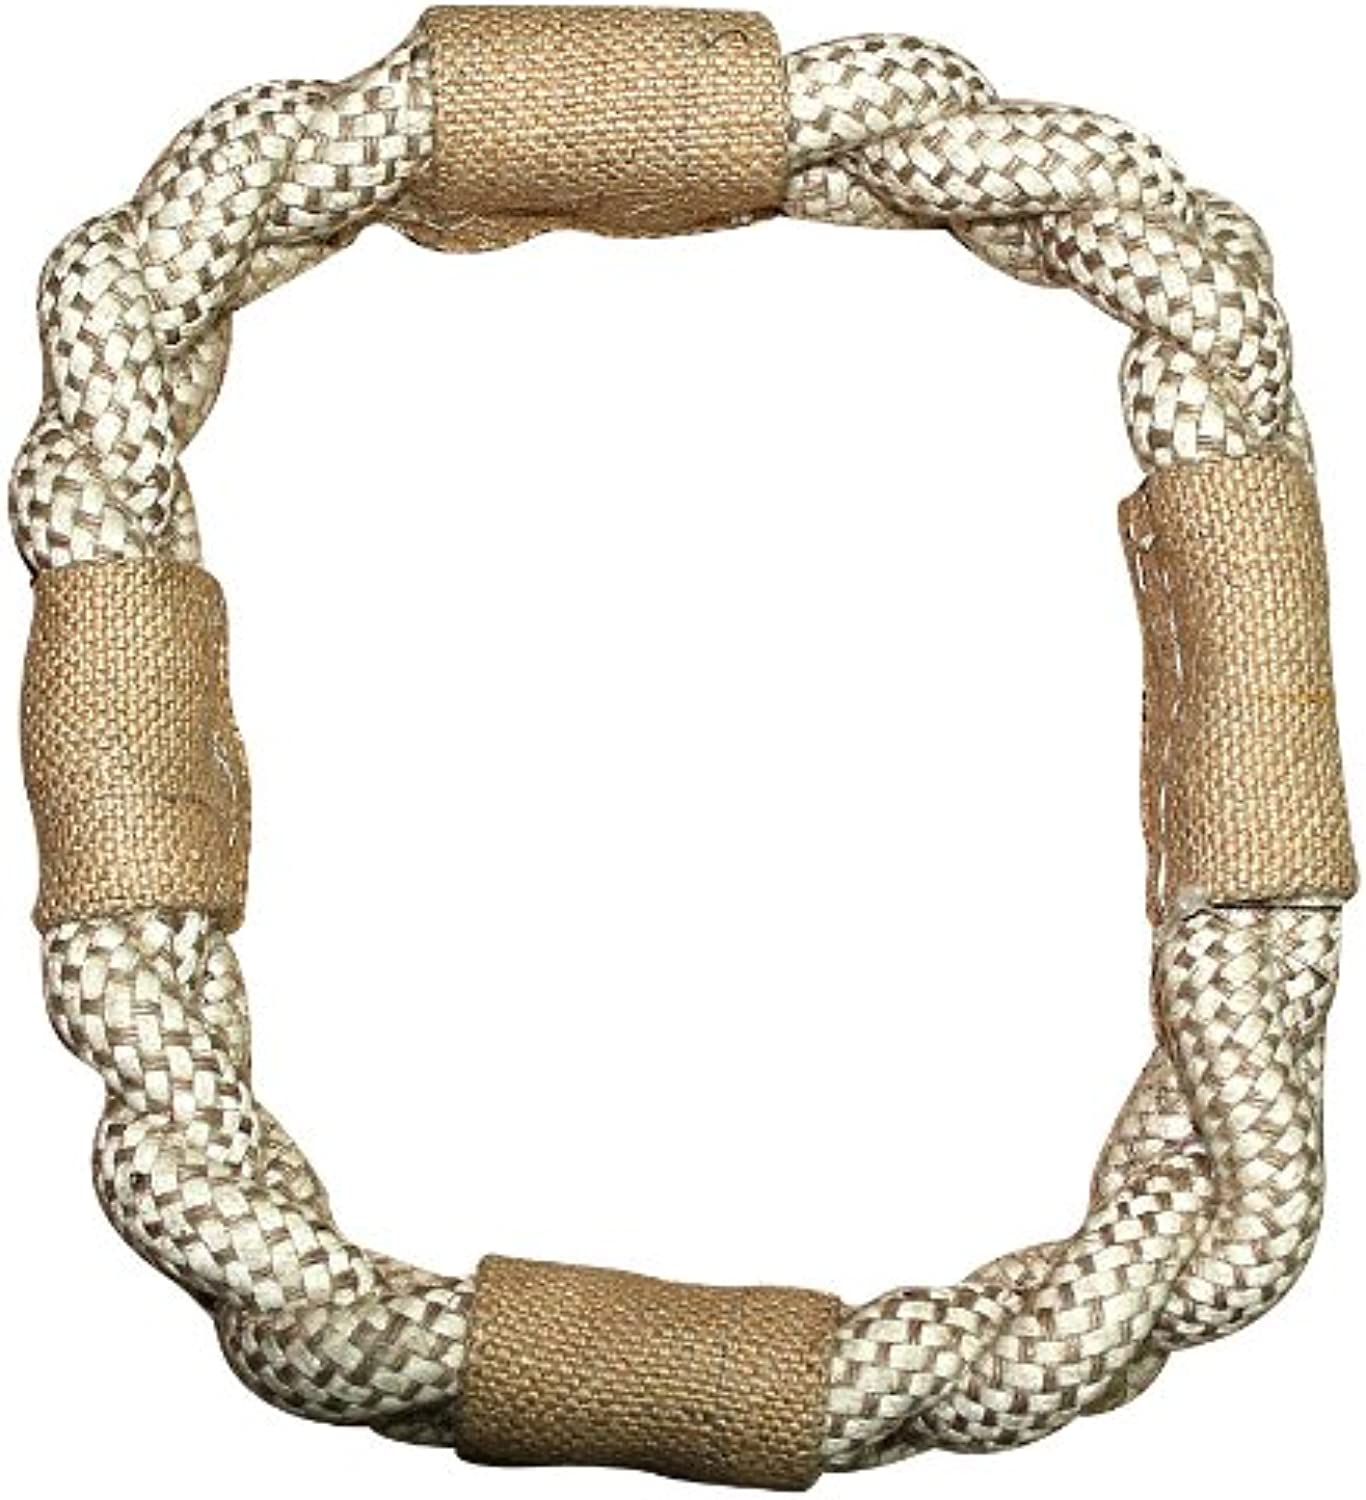 Advance Pet Products Cotton Jute Ring